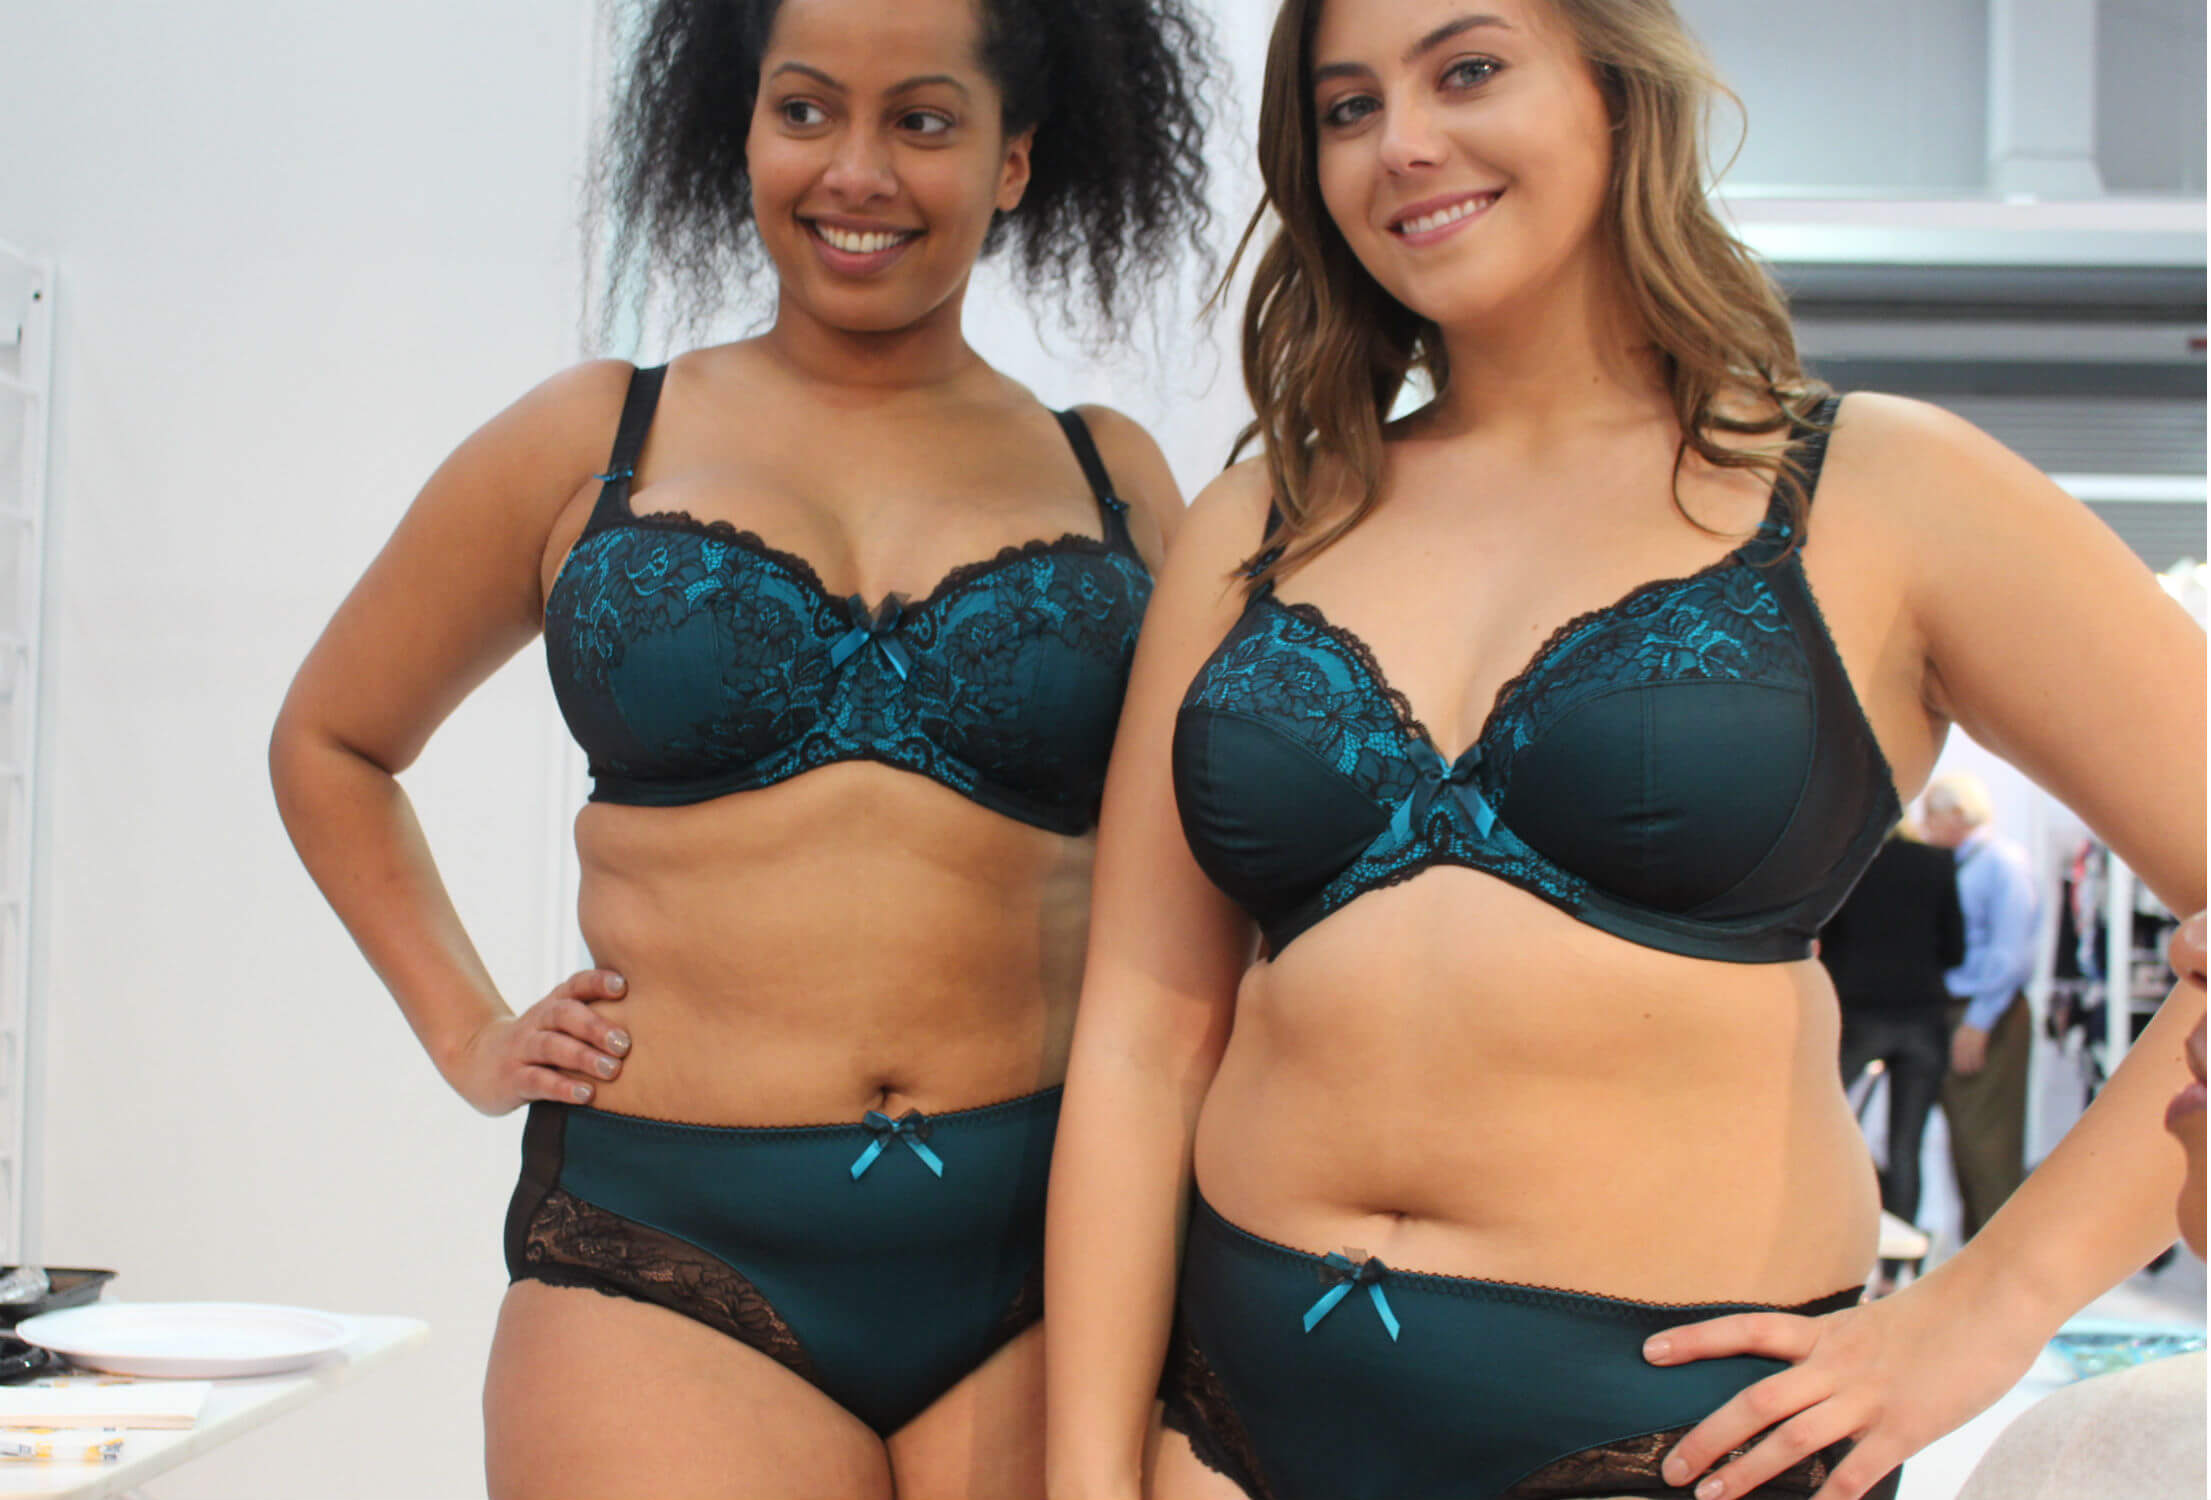 93b4964a21b Lingerie Market Fall Winter 2017  14 Size-Inclusive and Plus Size Lingerie  Brands to Know